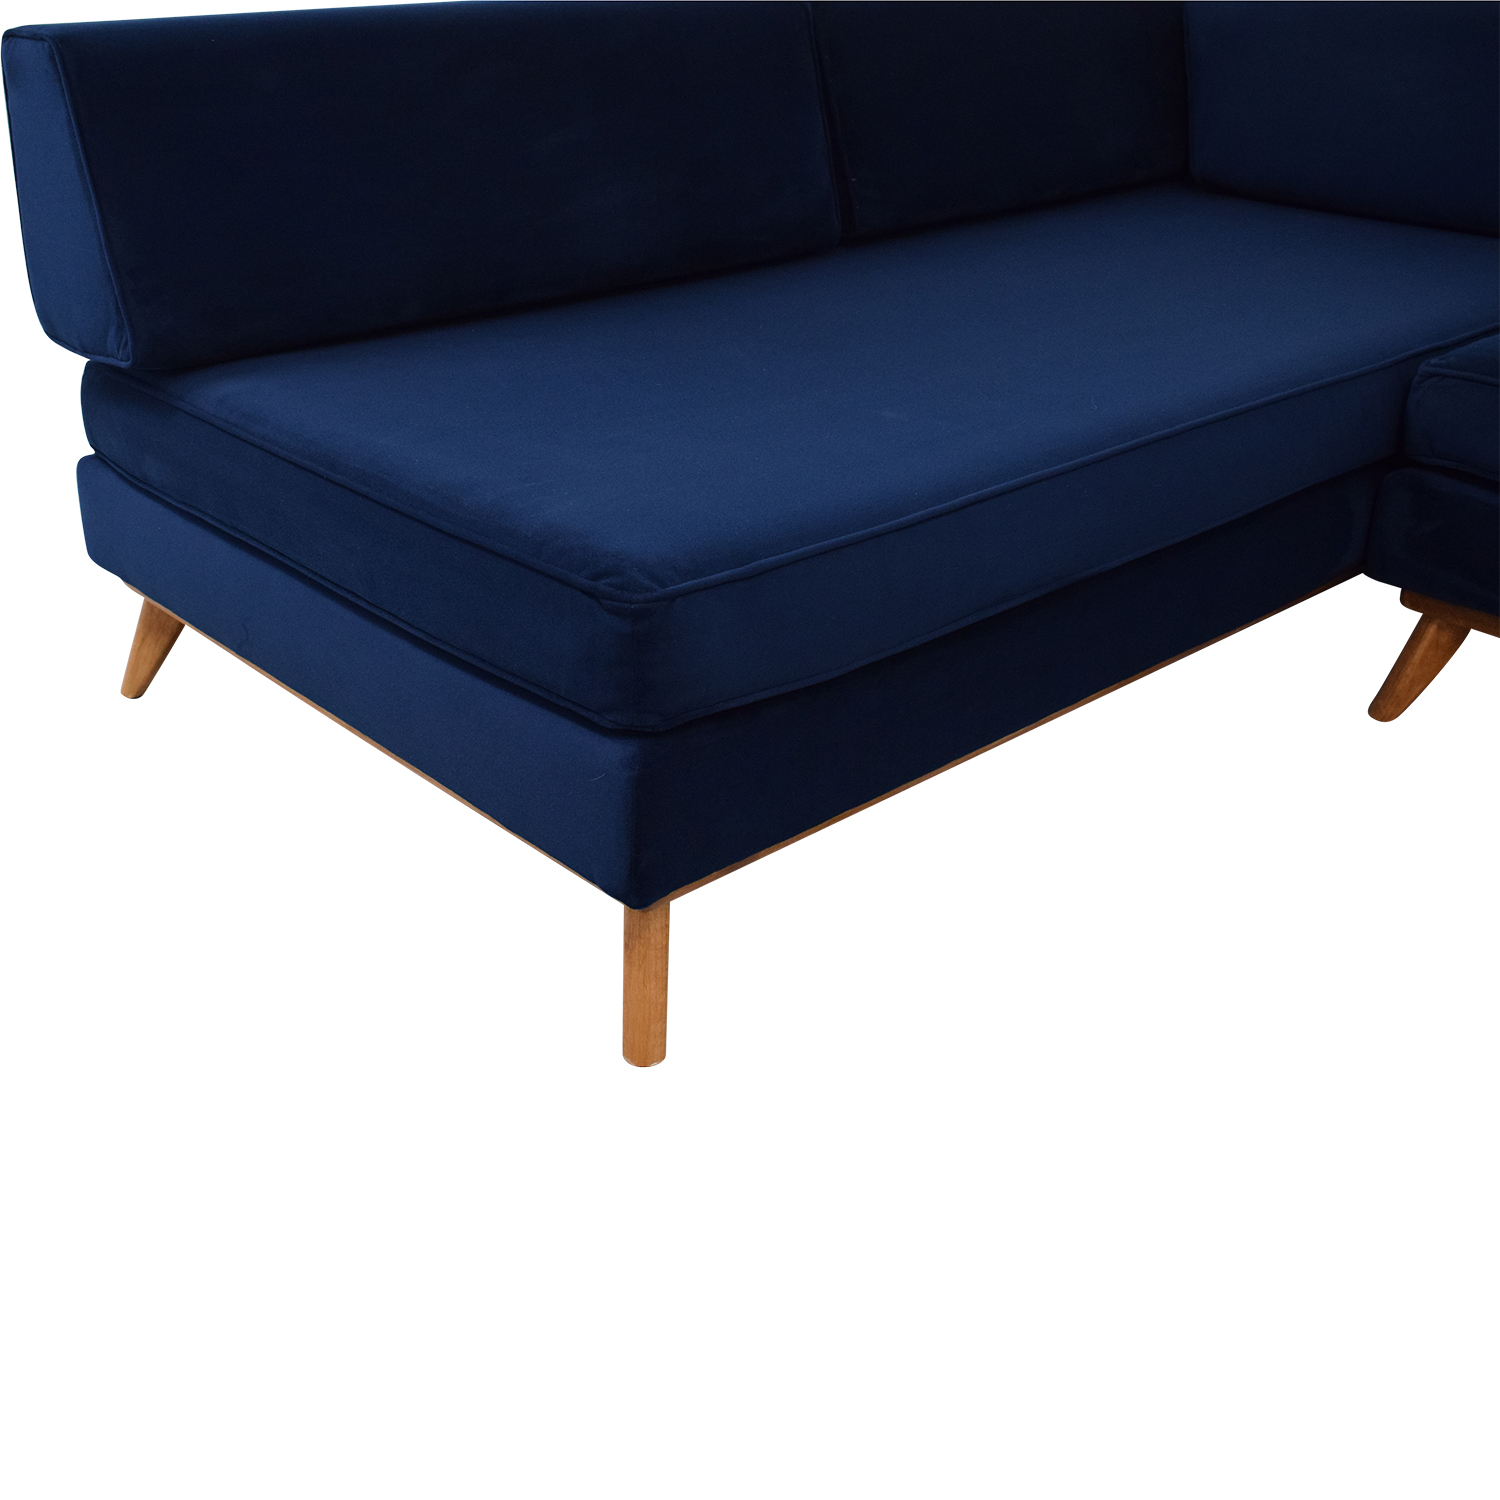 Total Design Furniture TDFurniture L-Shaped Sectional Convertible Day Bed ma